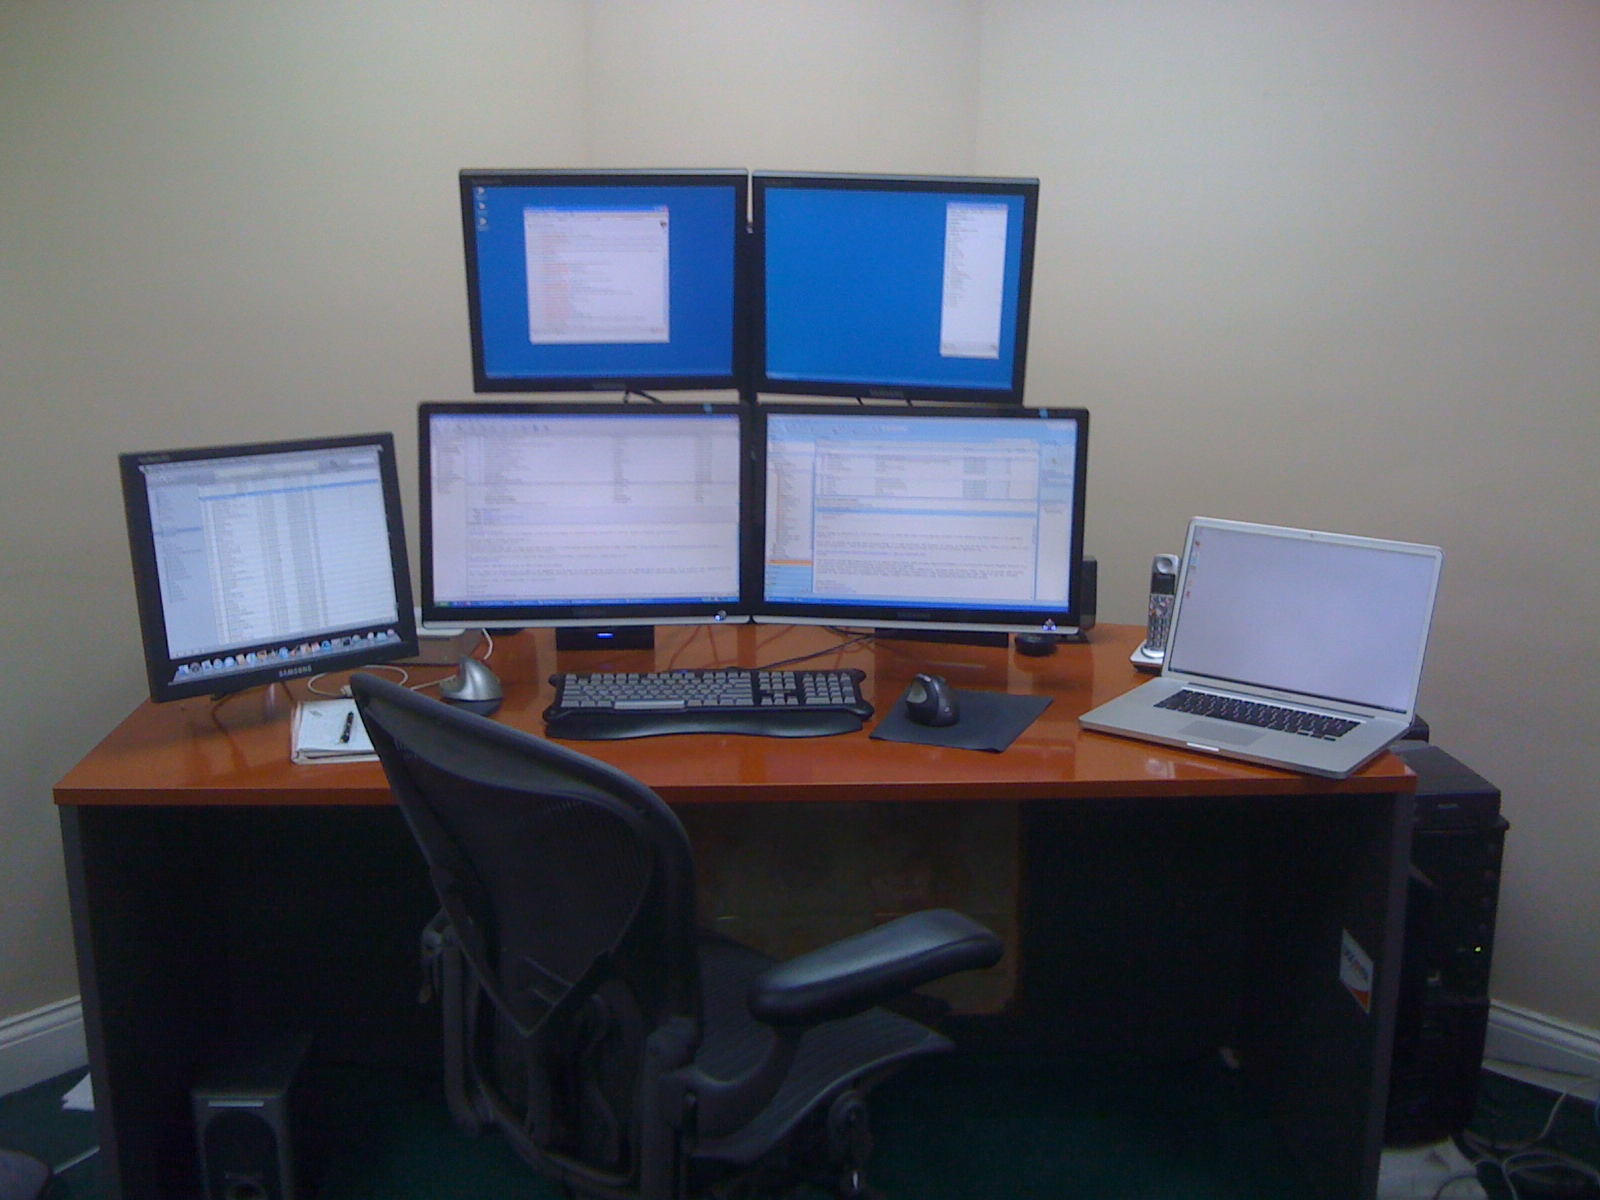 chair with desk spandex covers and sashes where i program | successful software